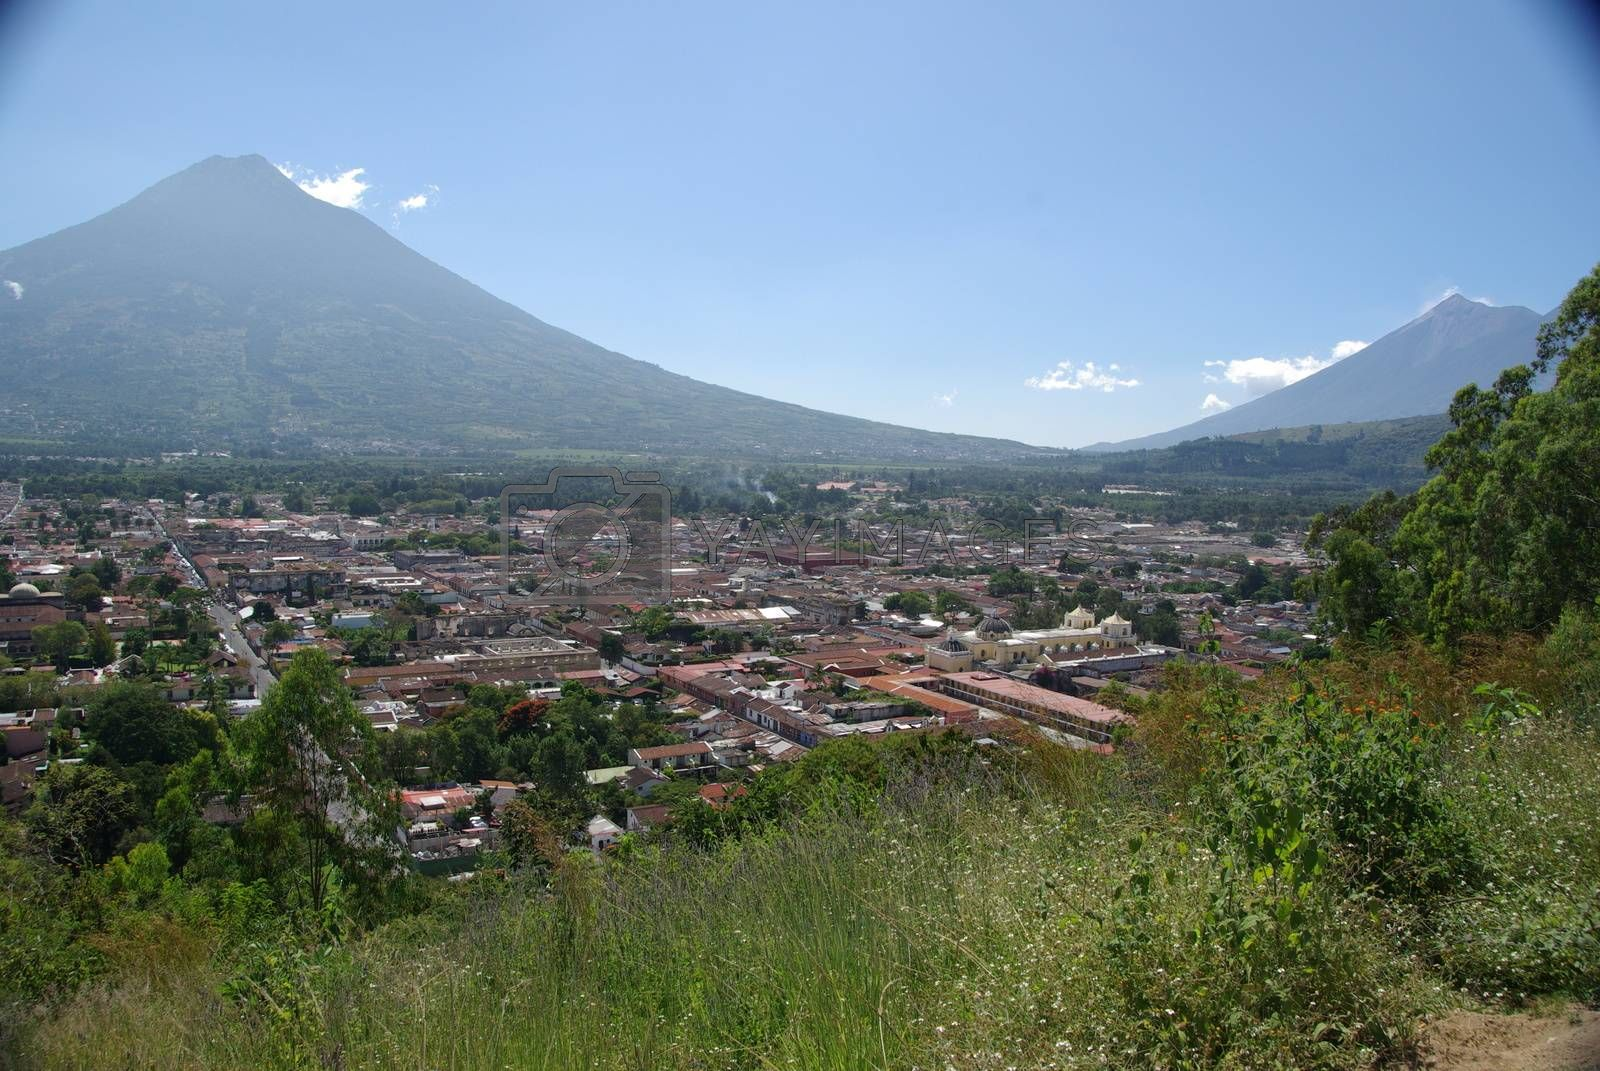 Volcano and the ancient colonial city of Antigua in Guatemala, Central America